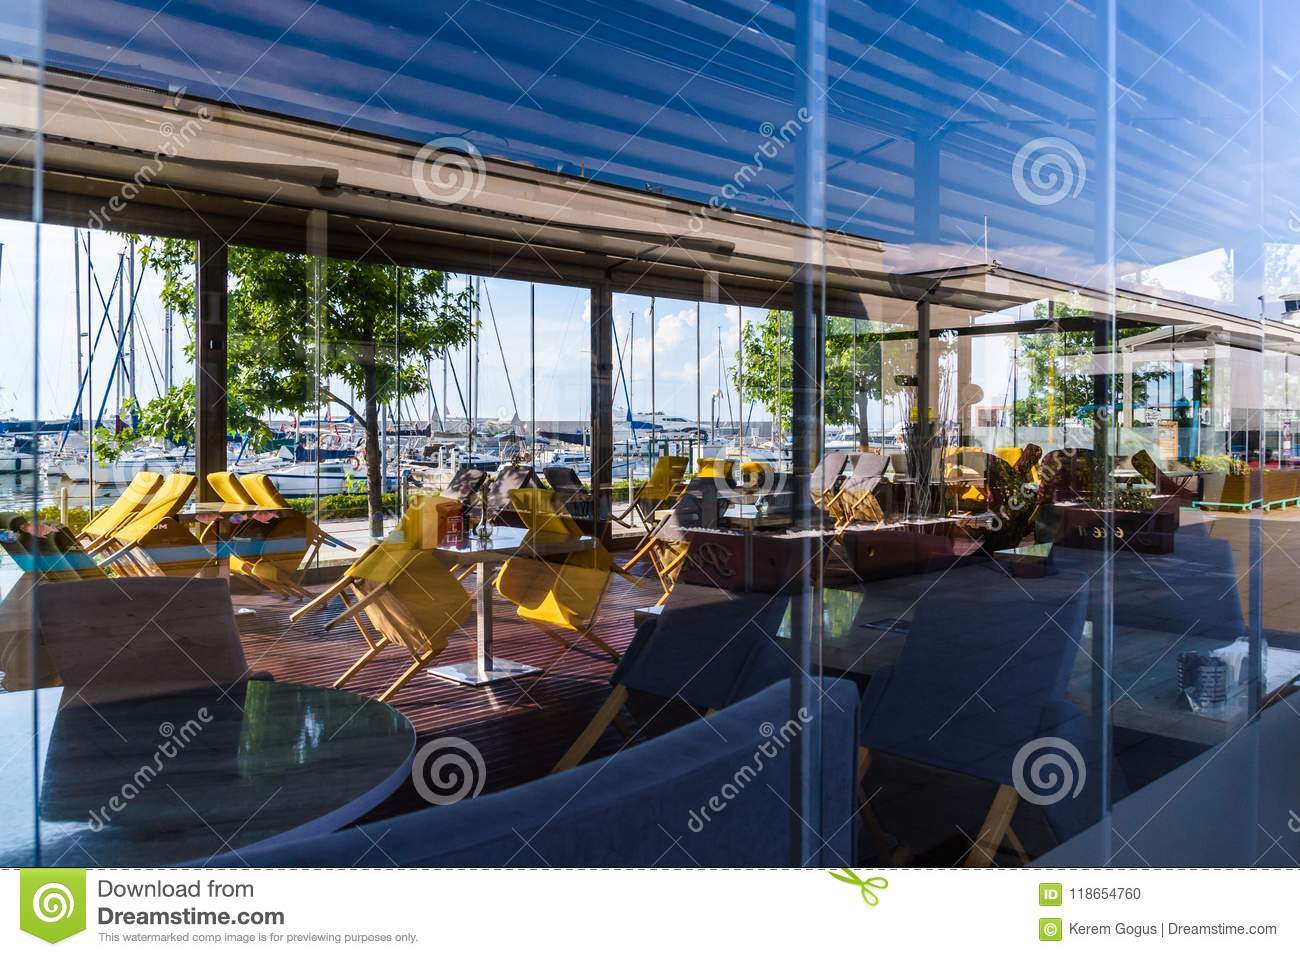 Yalova Marina Restaurants And Seaport Of Marmara Turkey